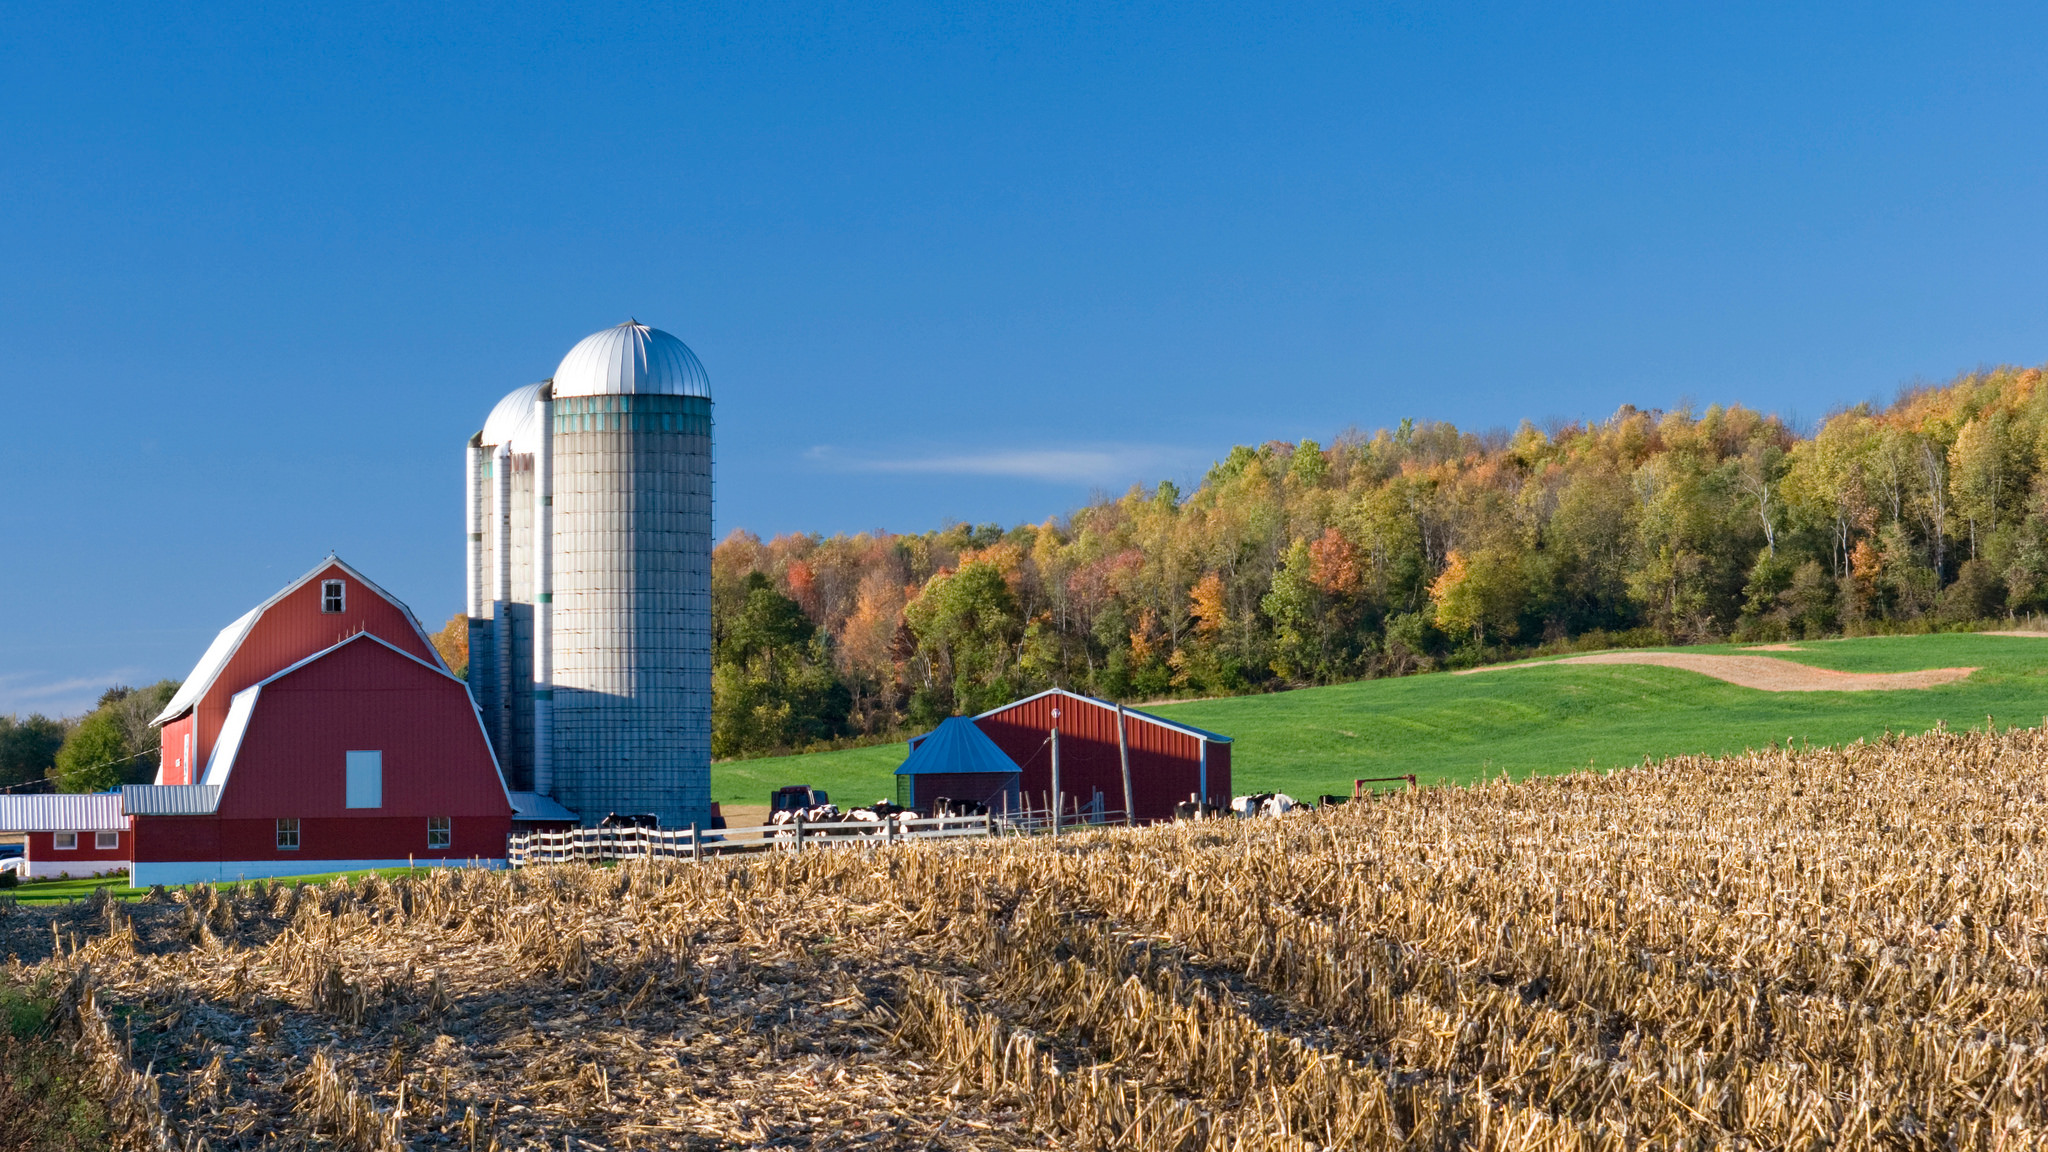 15 Beautiful Farm Photos Of Minnesota